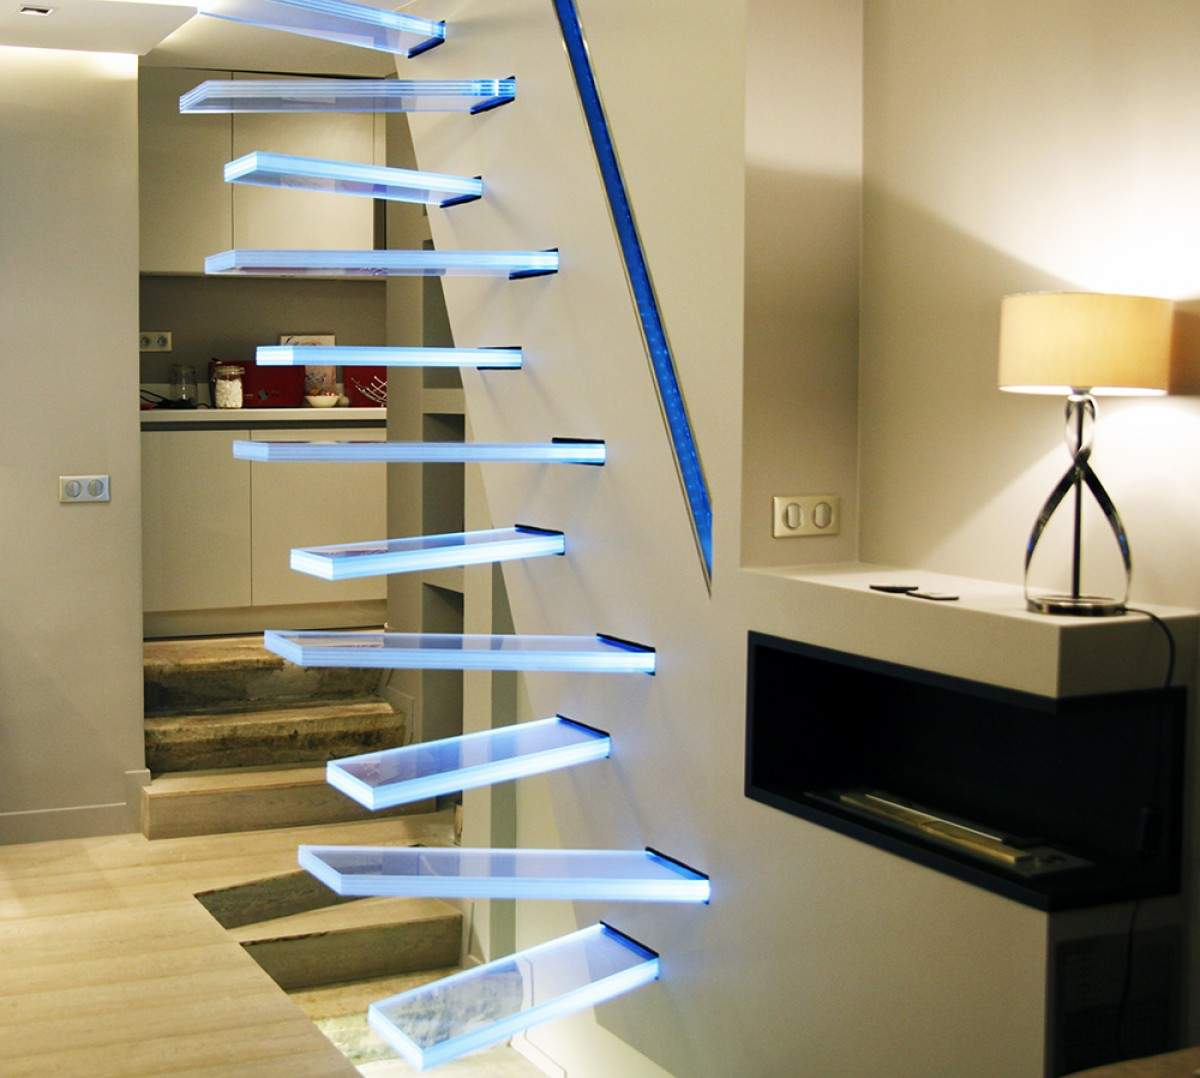 Escalier en Verre design Archives - JO YANA